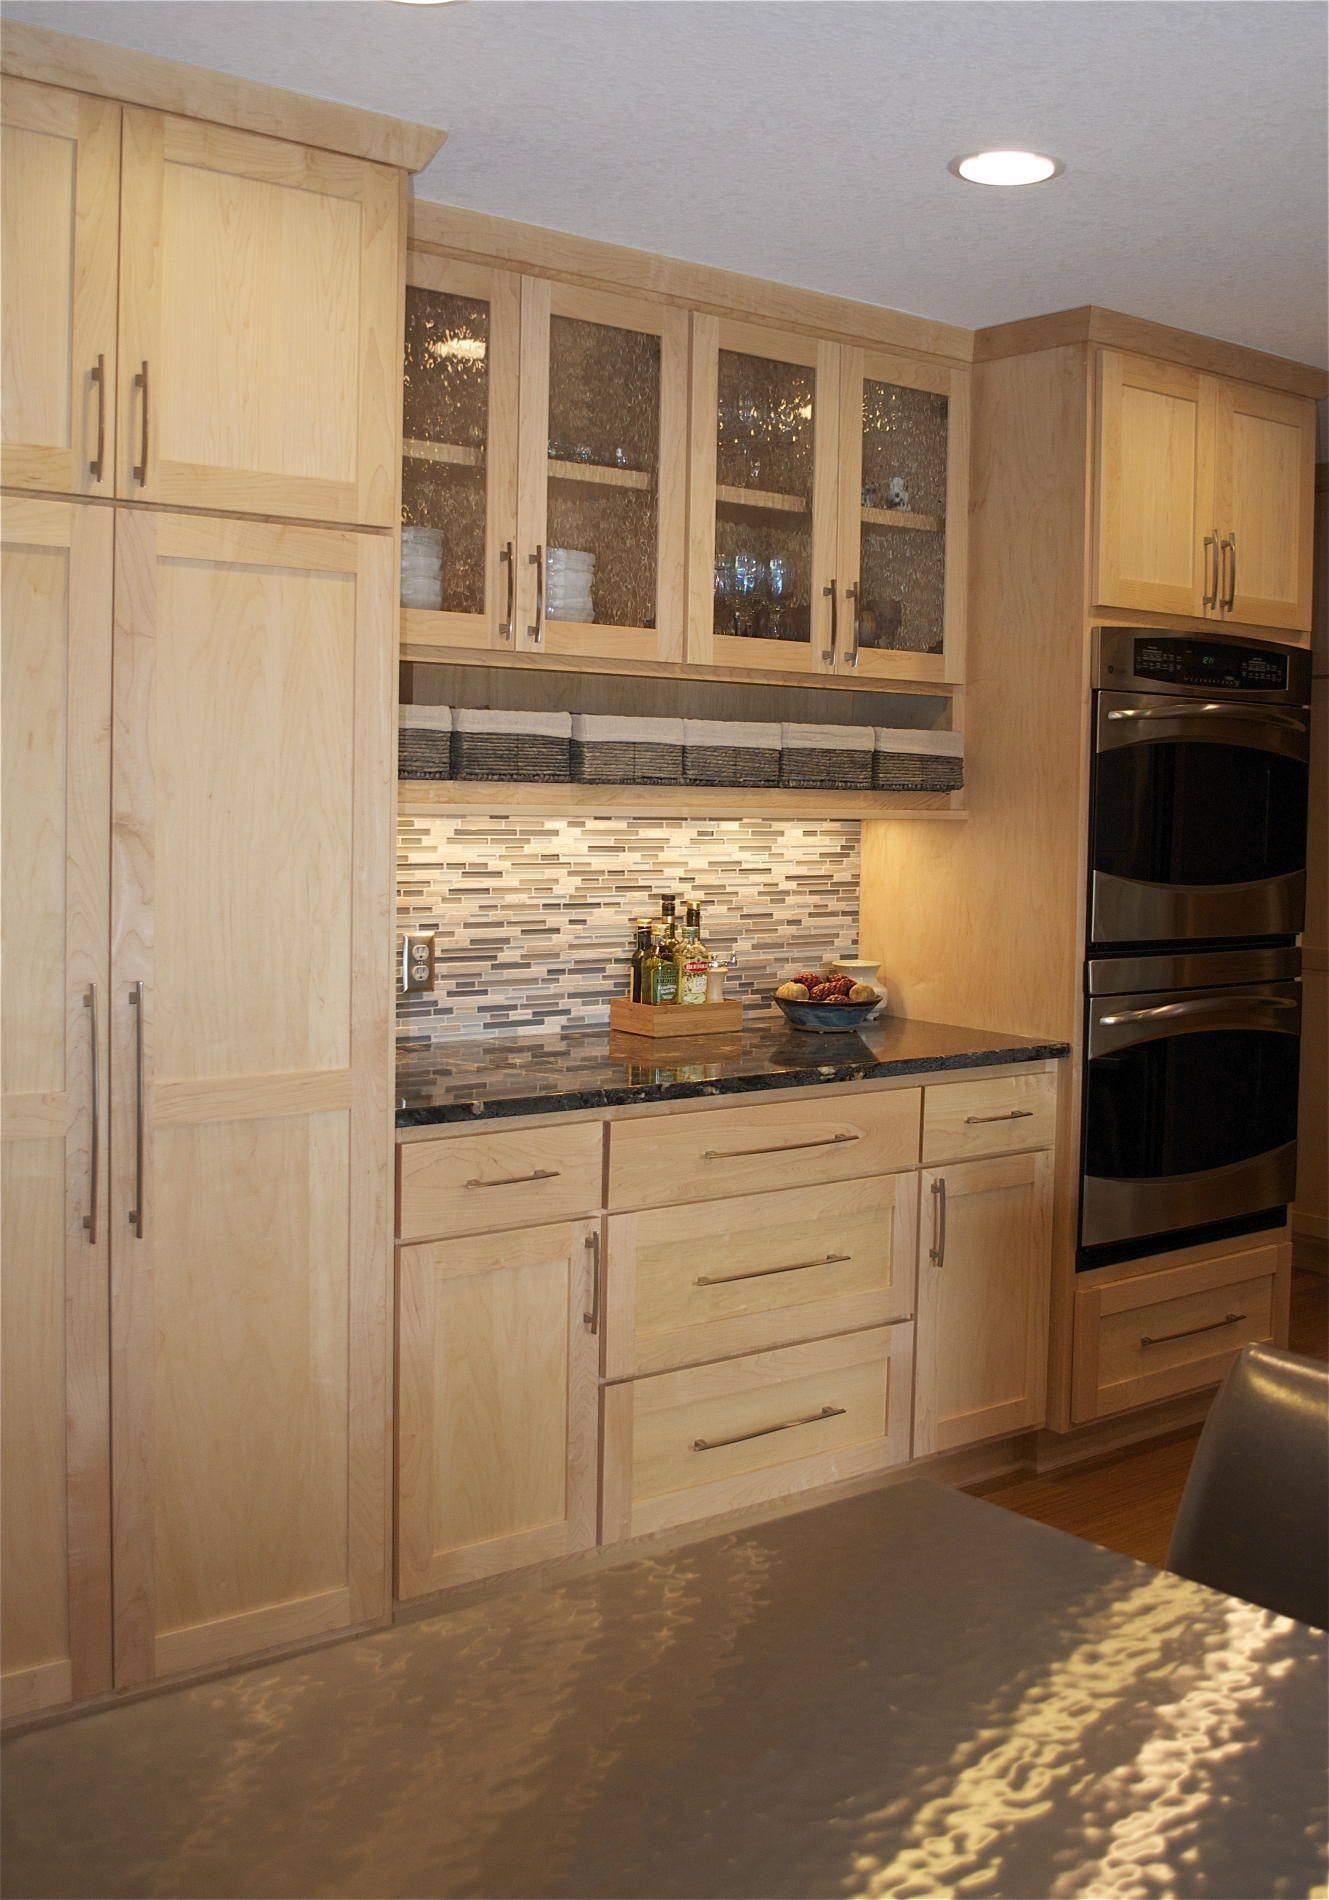 Exactly What We Re Looking For Wooden Kitchen Cabinets Maple Kitchen Cabinets Best Kitchen Cabinets